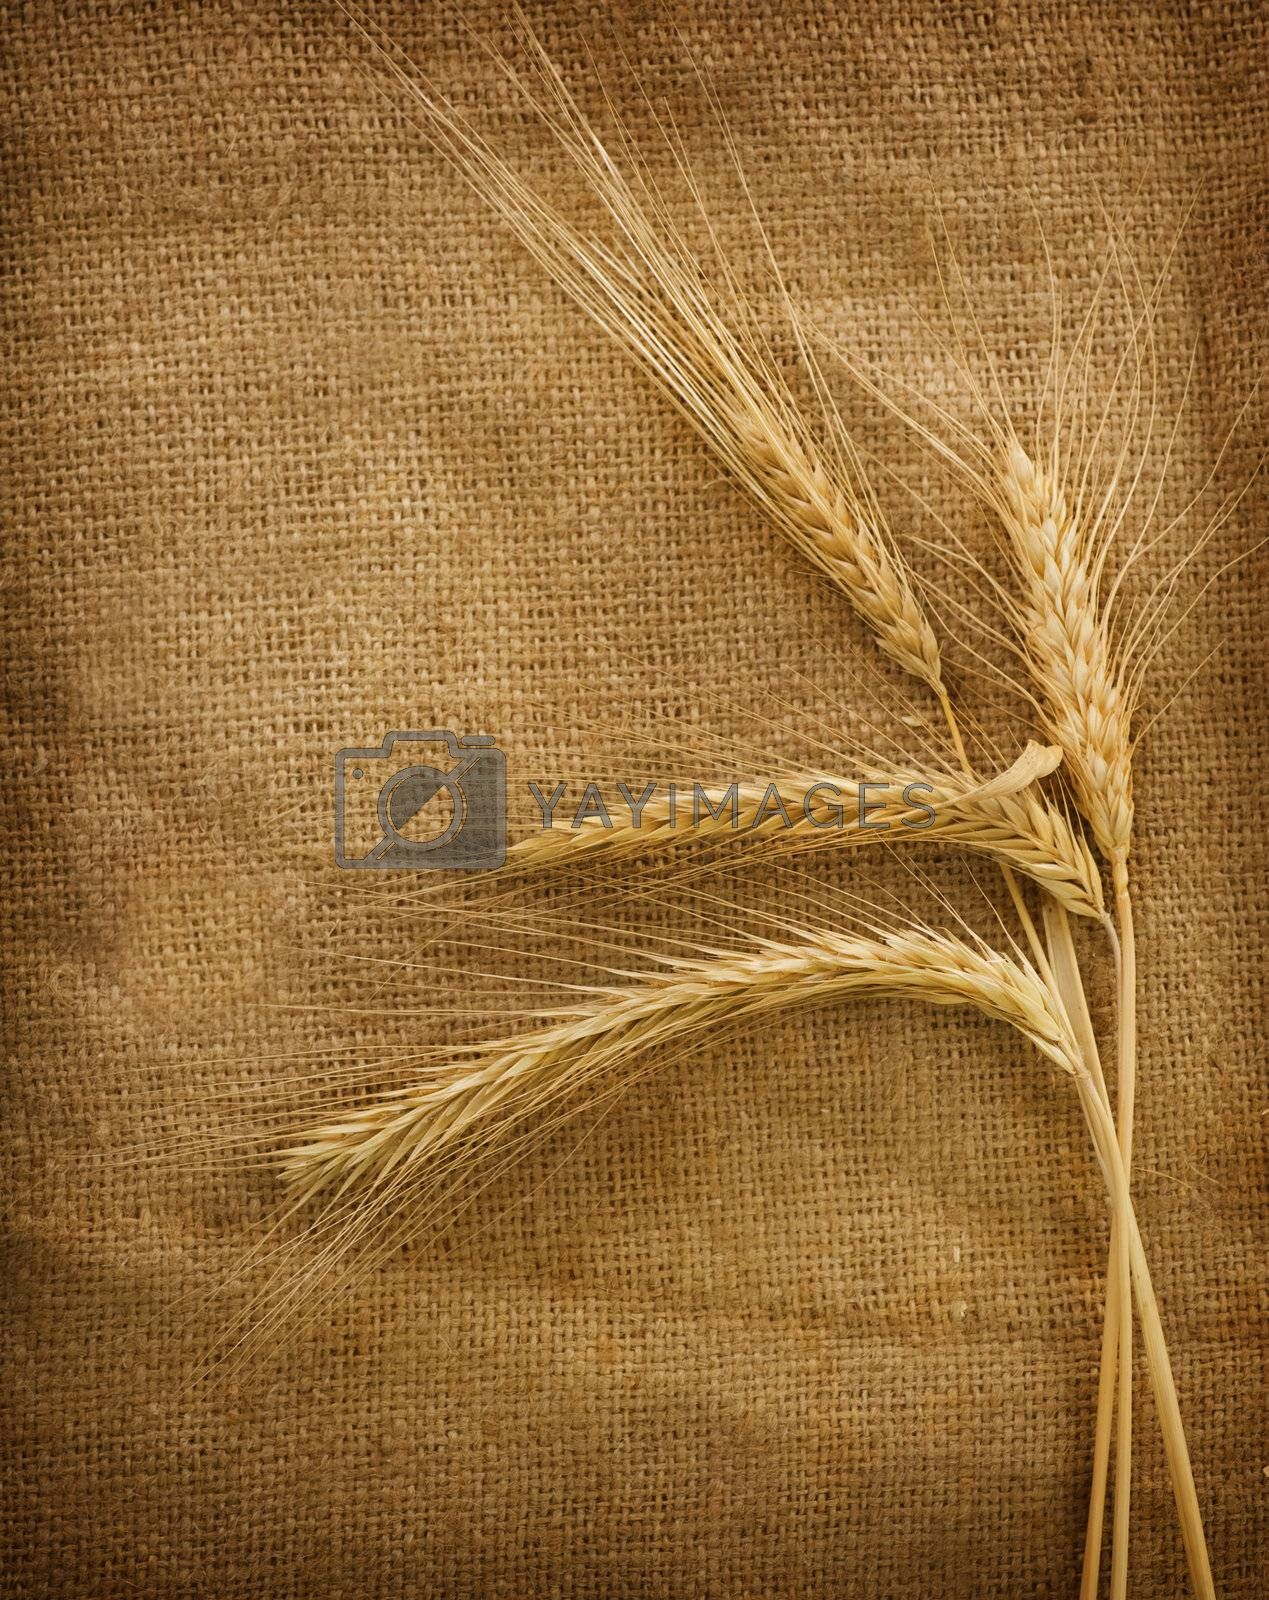 Wheat Ears Over Burlap Background  by Subbotina Anna